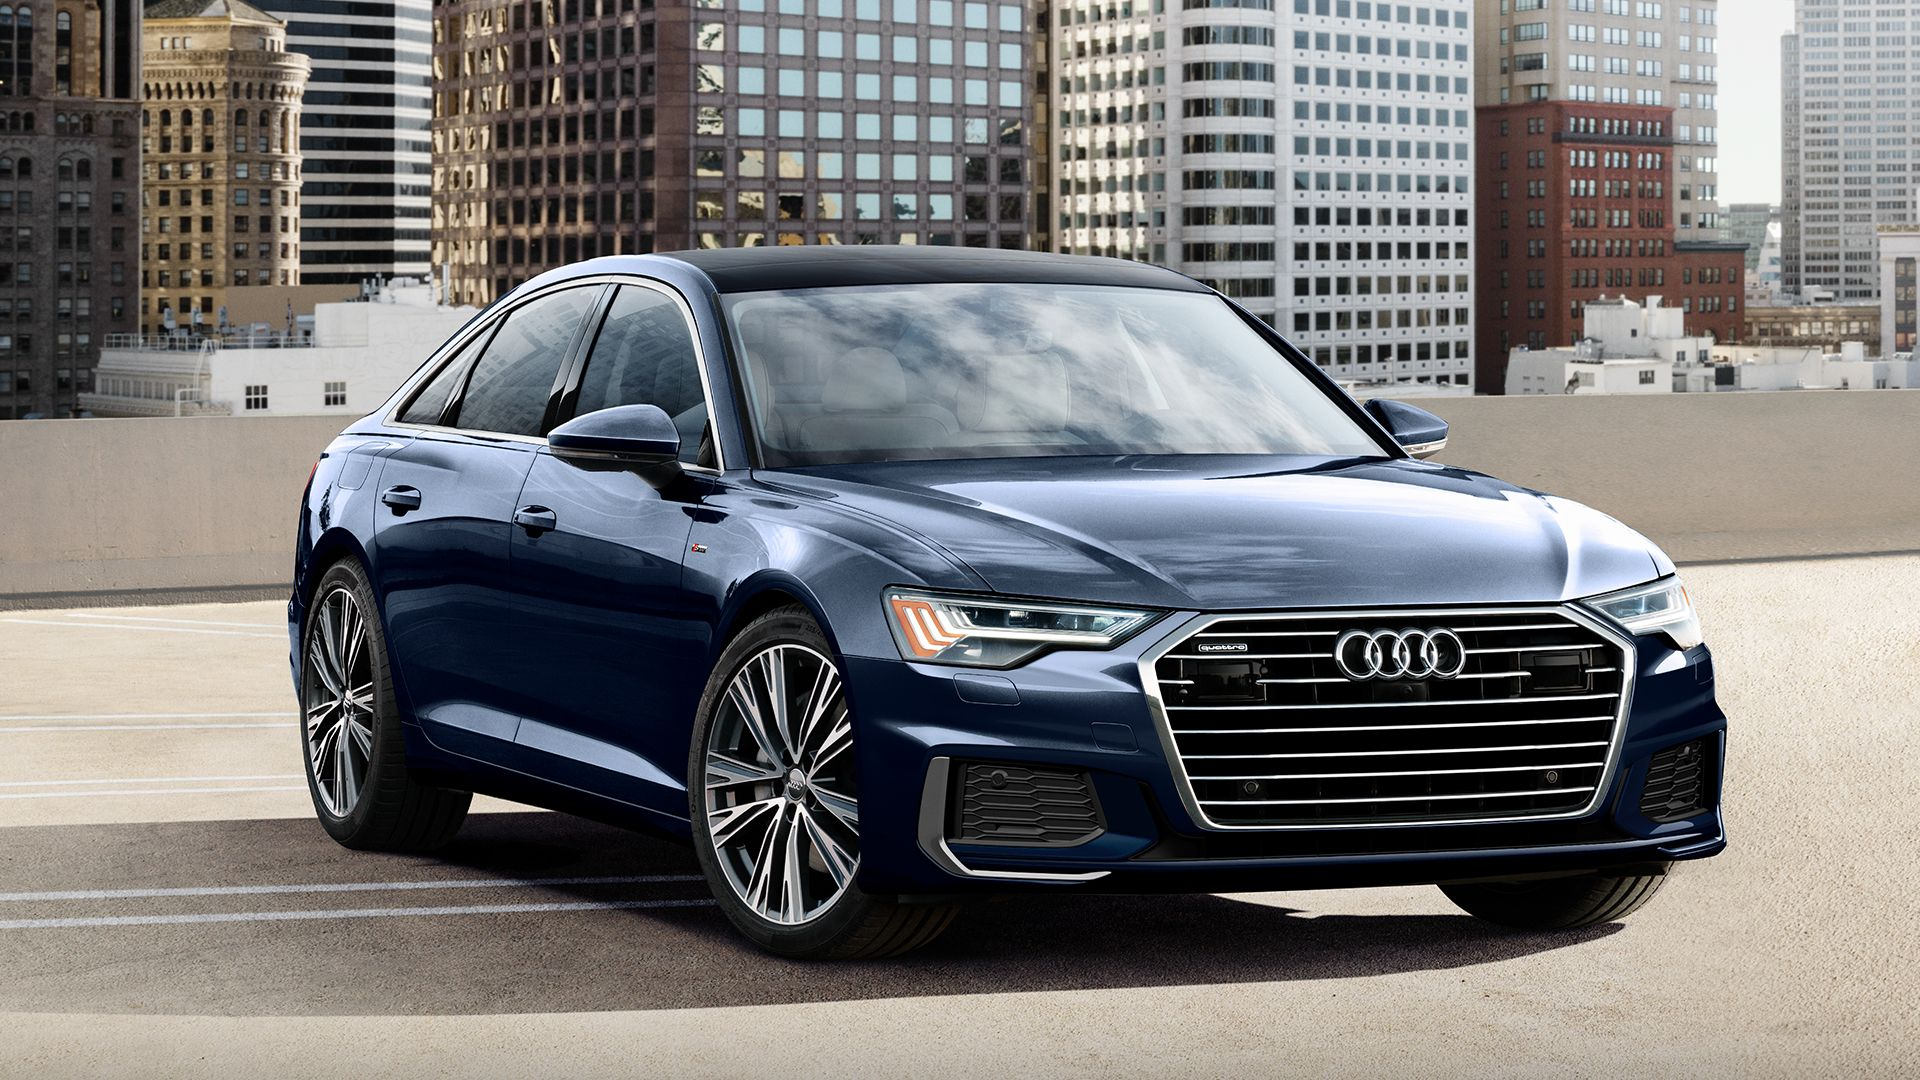 5 Audi A5 Review, Pricing, and Specs